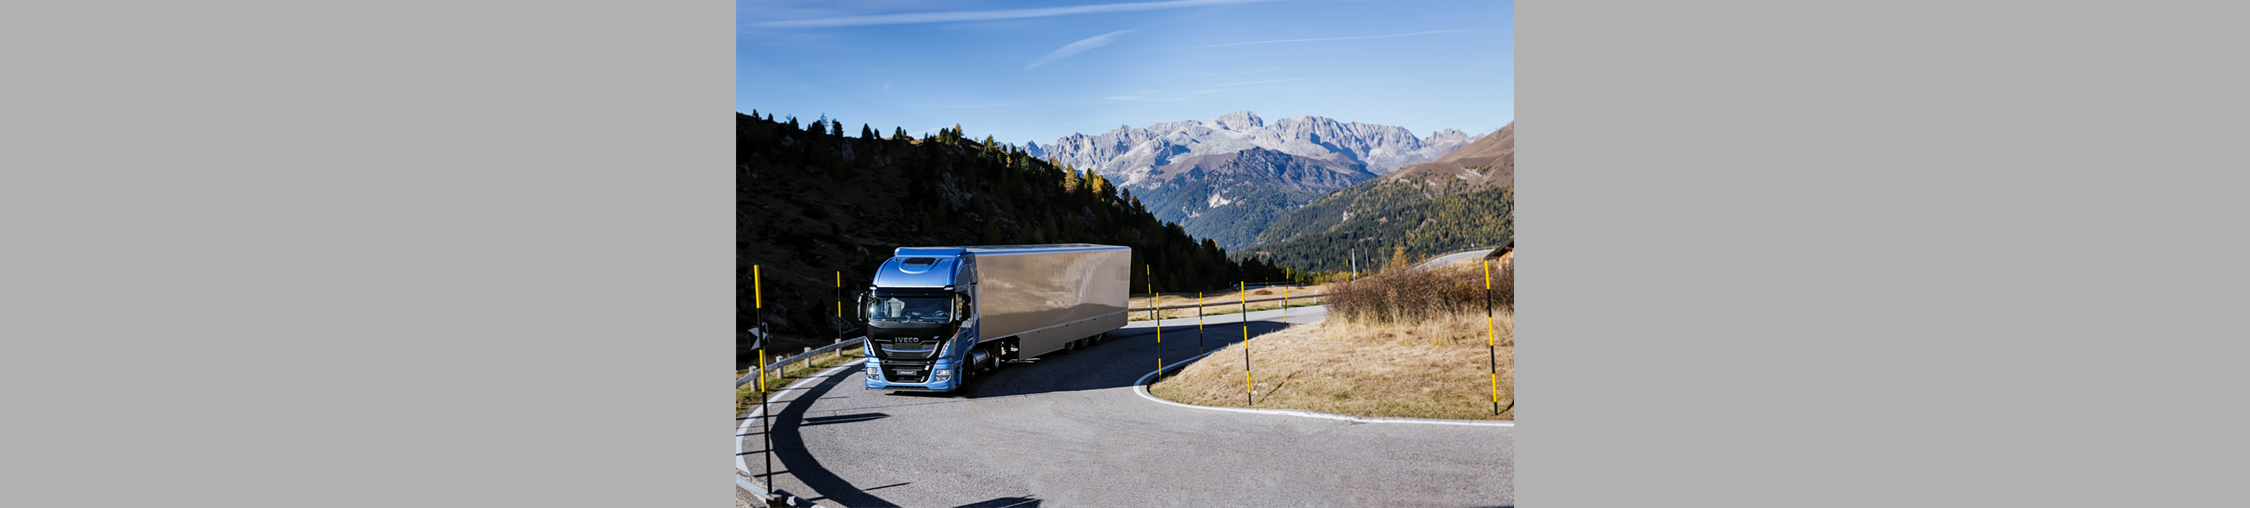 Le Stralis NP 460 remporte le titre de Sustainable Truck of the Year 2019